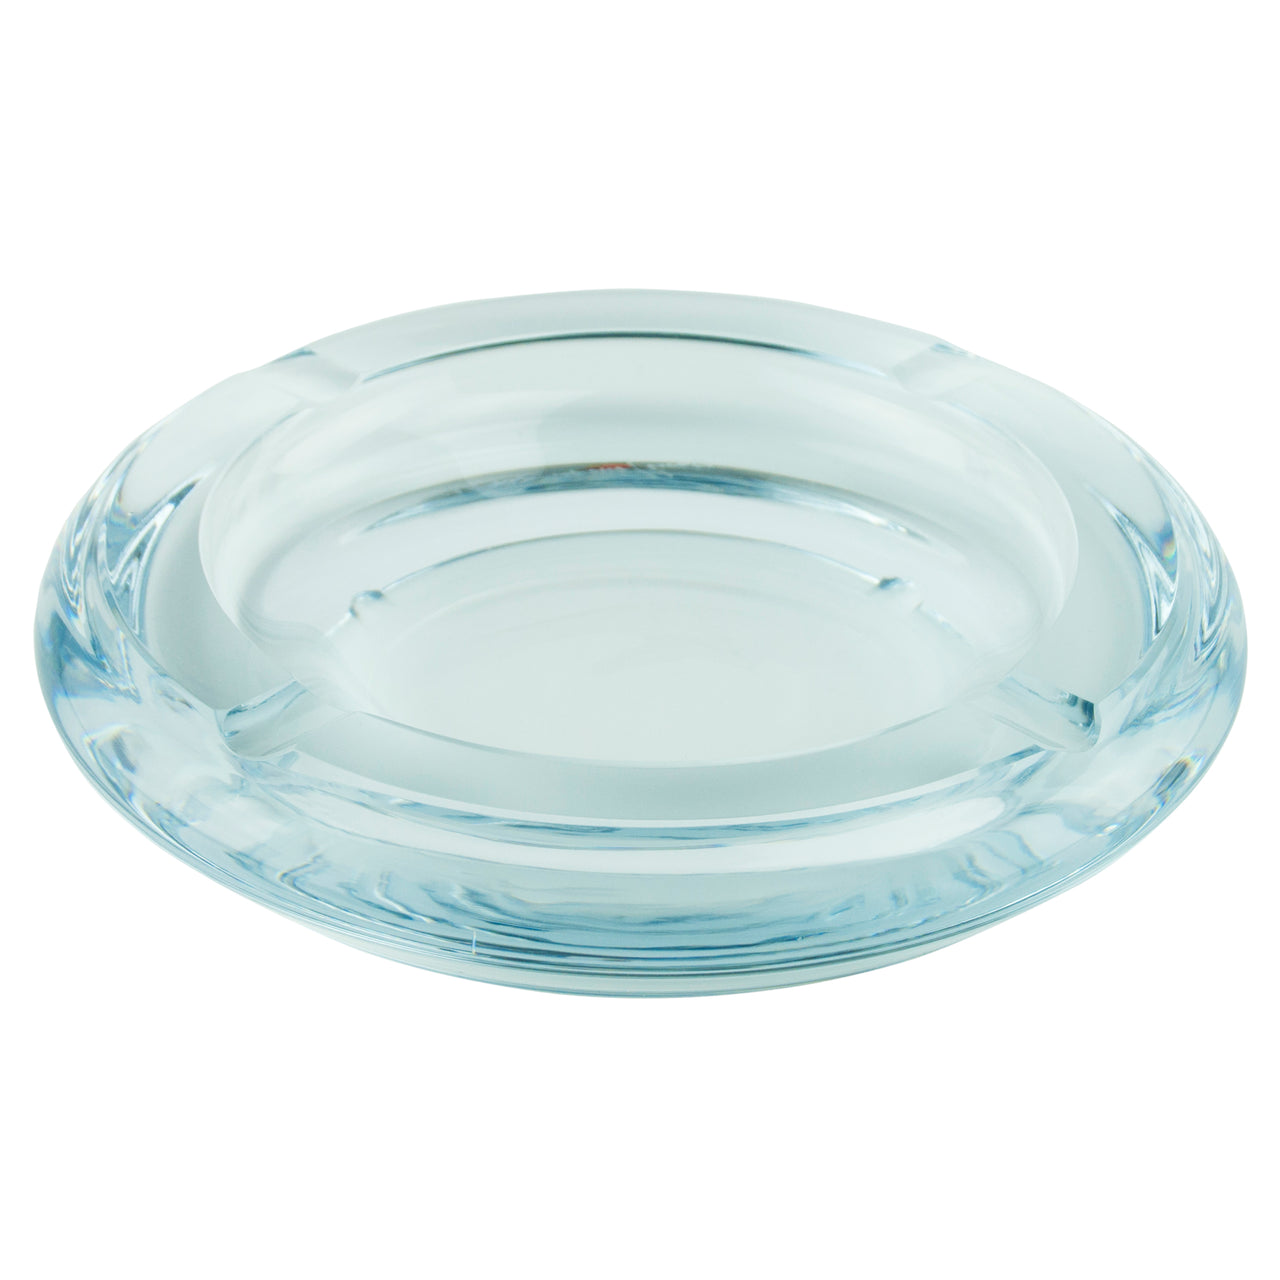 Georg Jensen Round Glass Ashtray | The Hour Shop Vintage